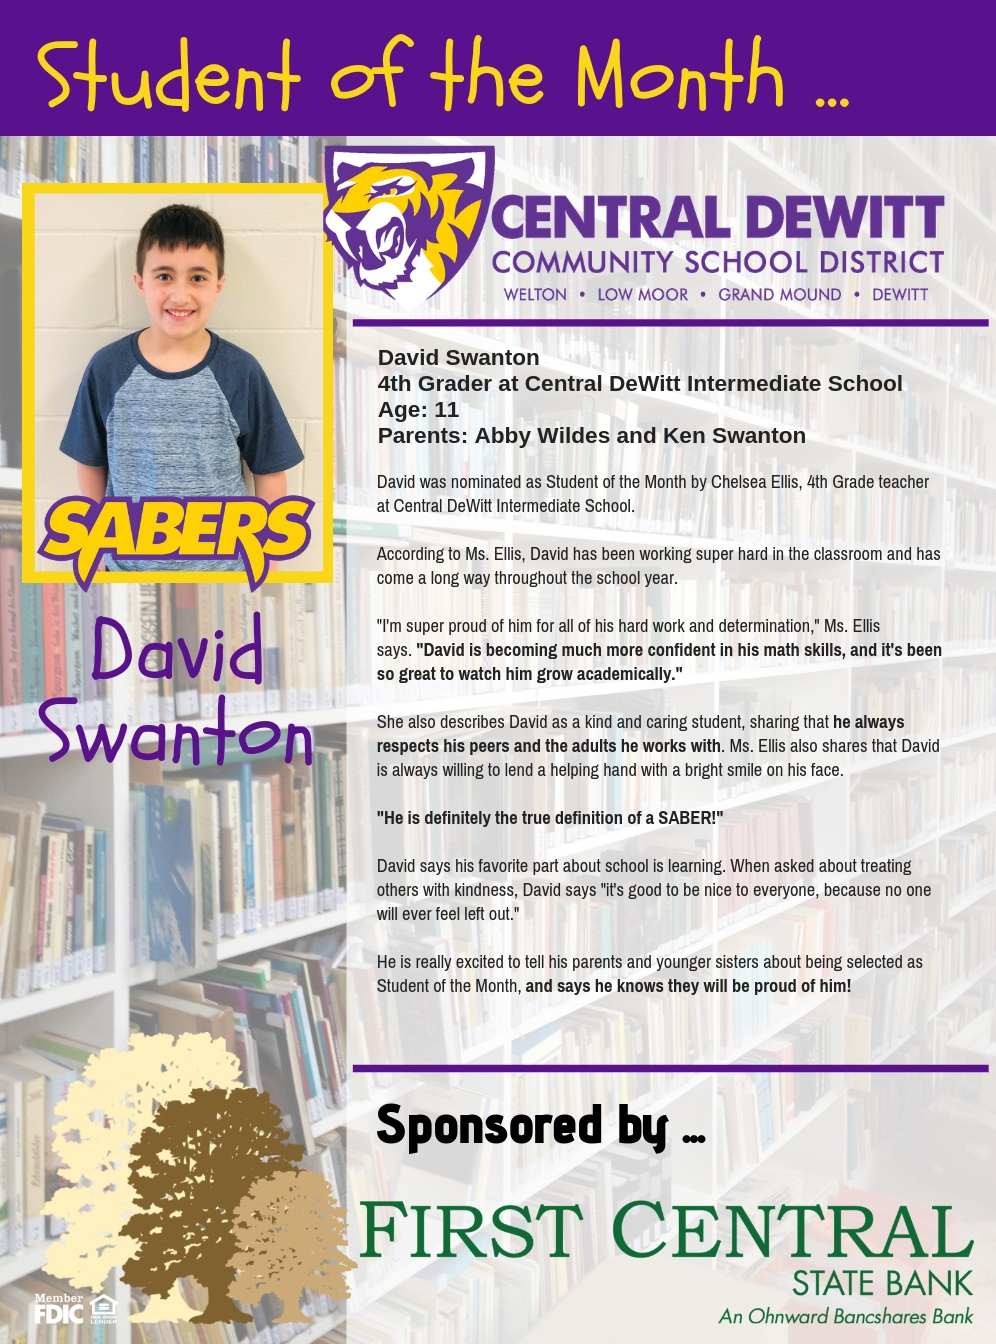 Student of the Month, David Swanton